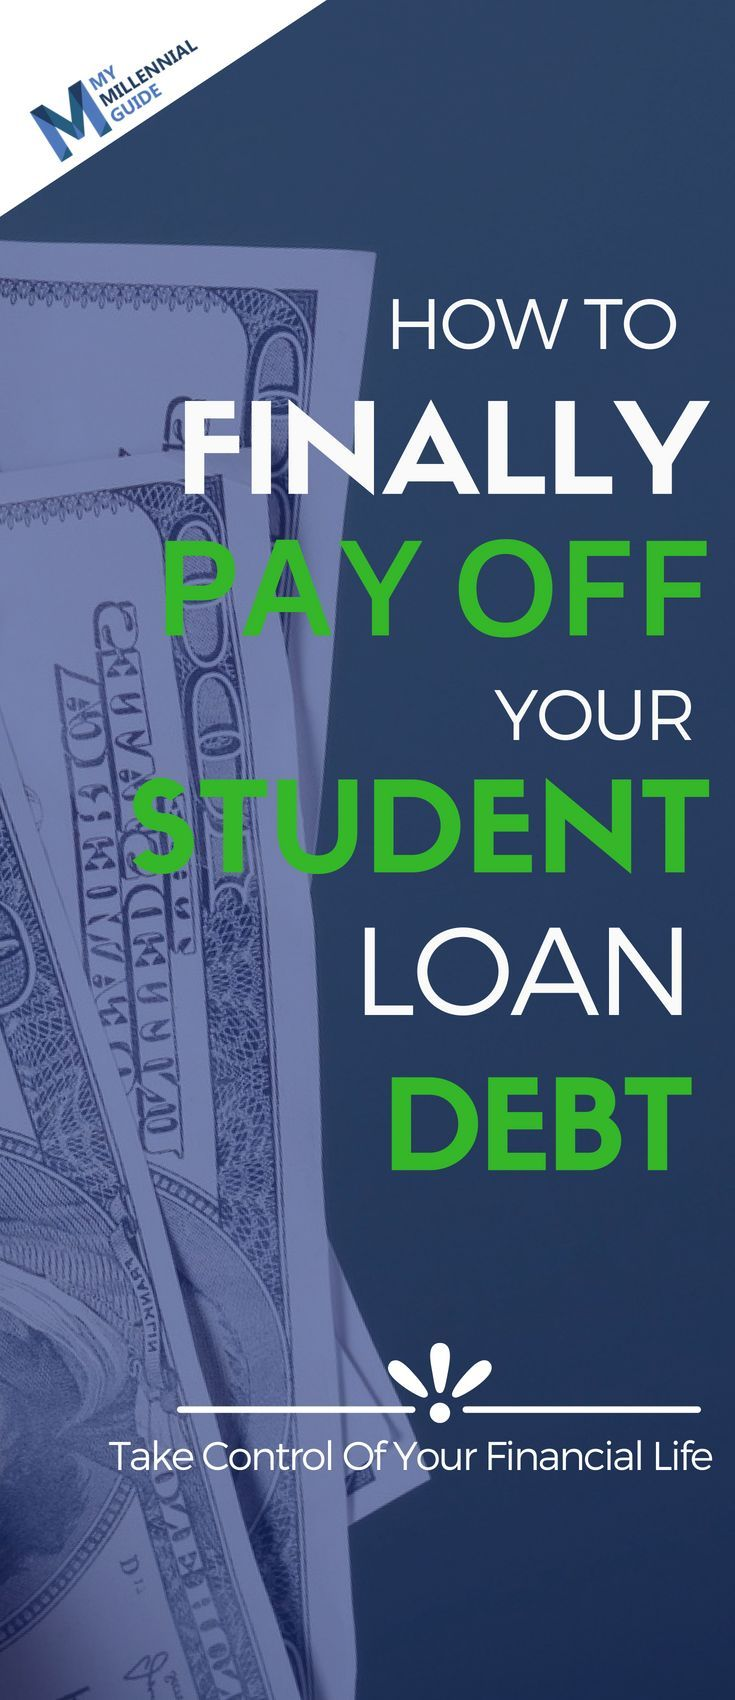 12 Strategies To Pay Off Student Loans Fast Reddit Beat Student Loans Federal Student Loans Student Loans Paying Student Loans